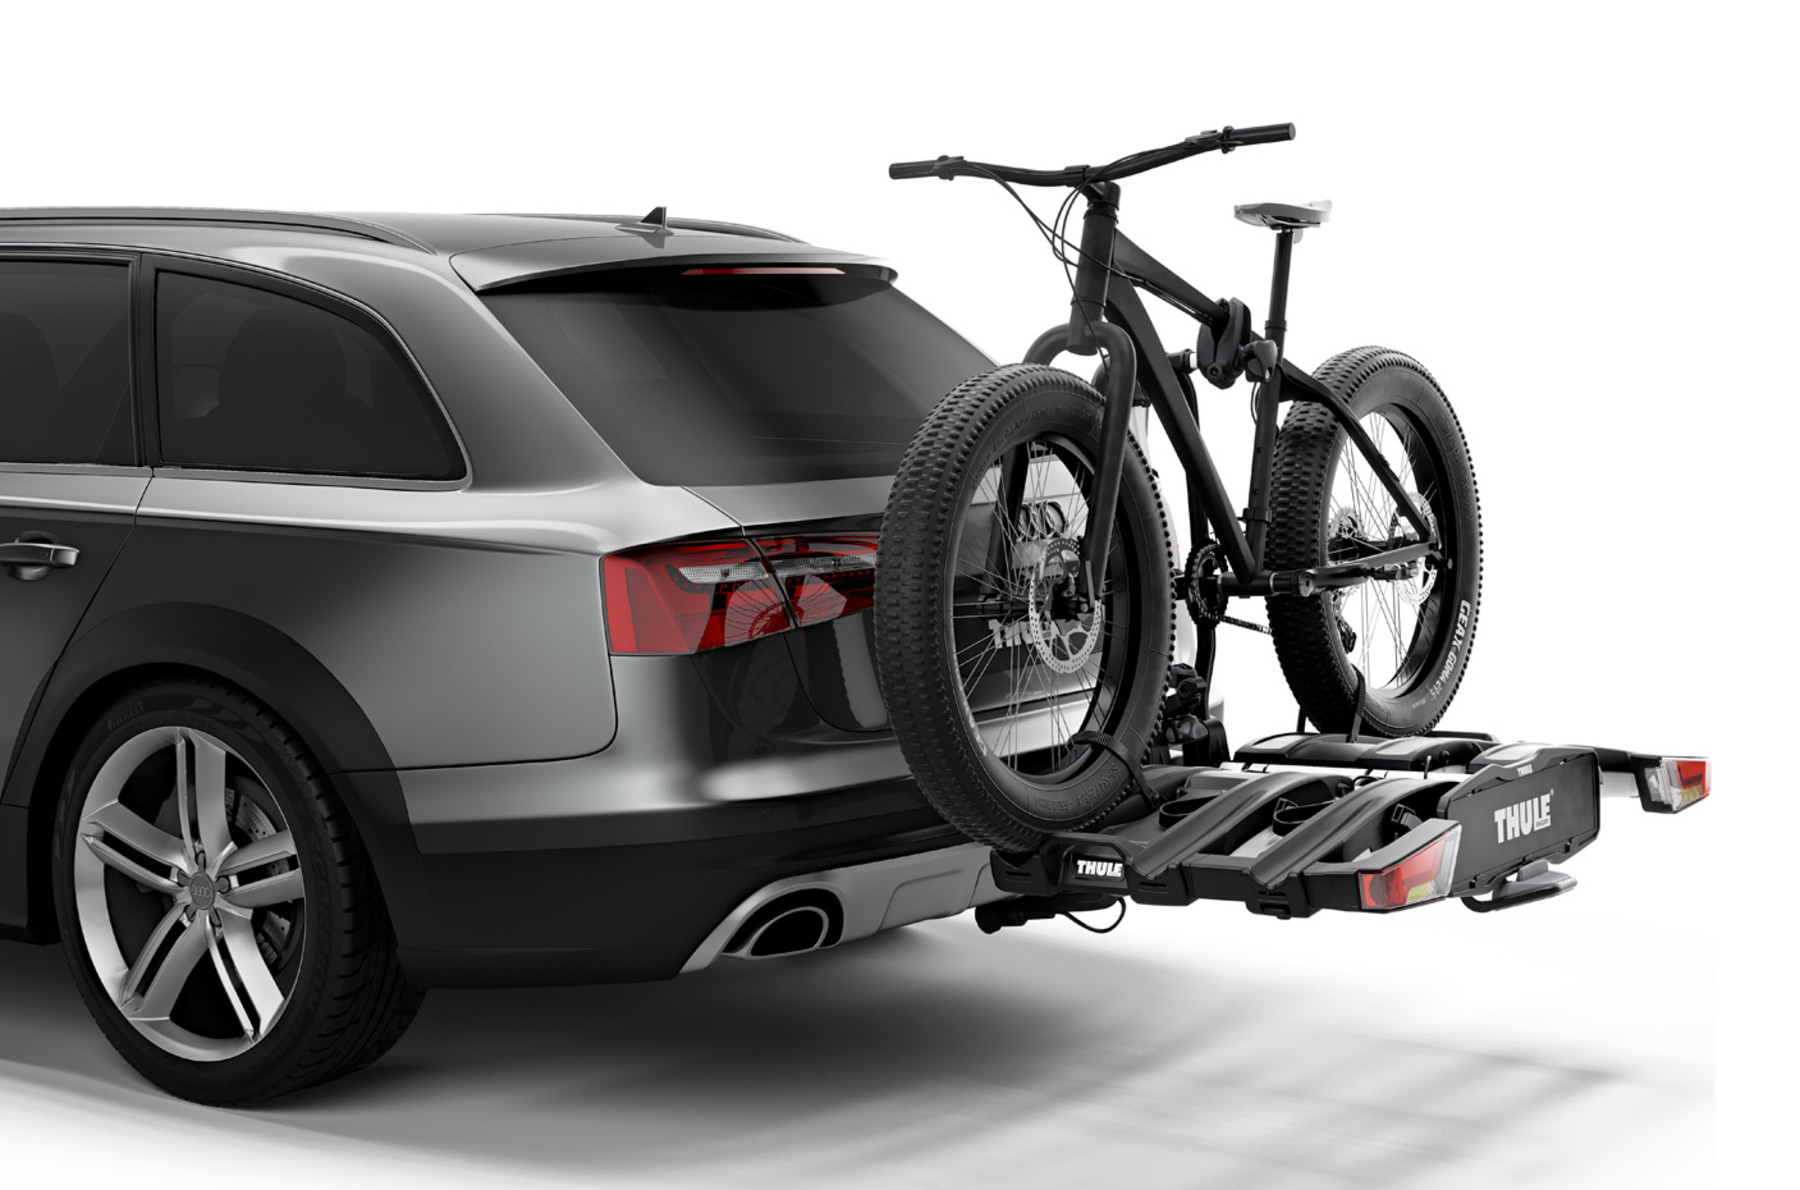 Thule EasyFold XT 3 Bike Cycle Carrier On Car